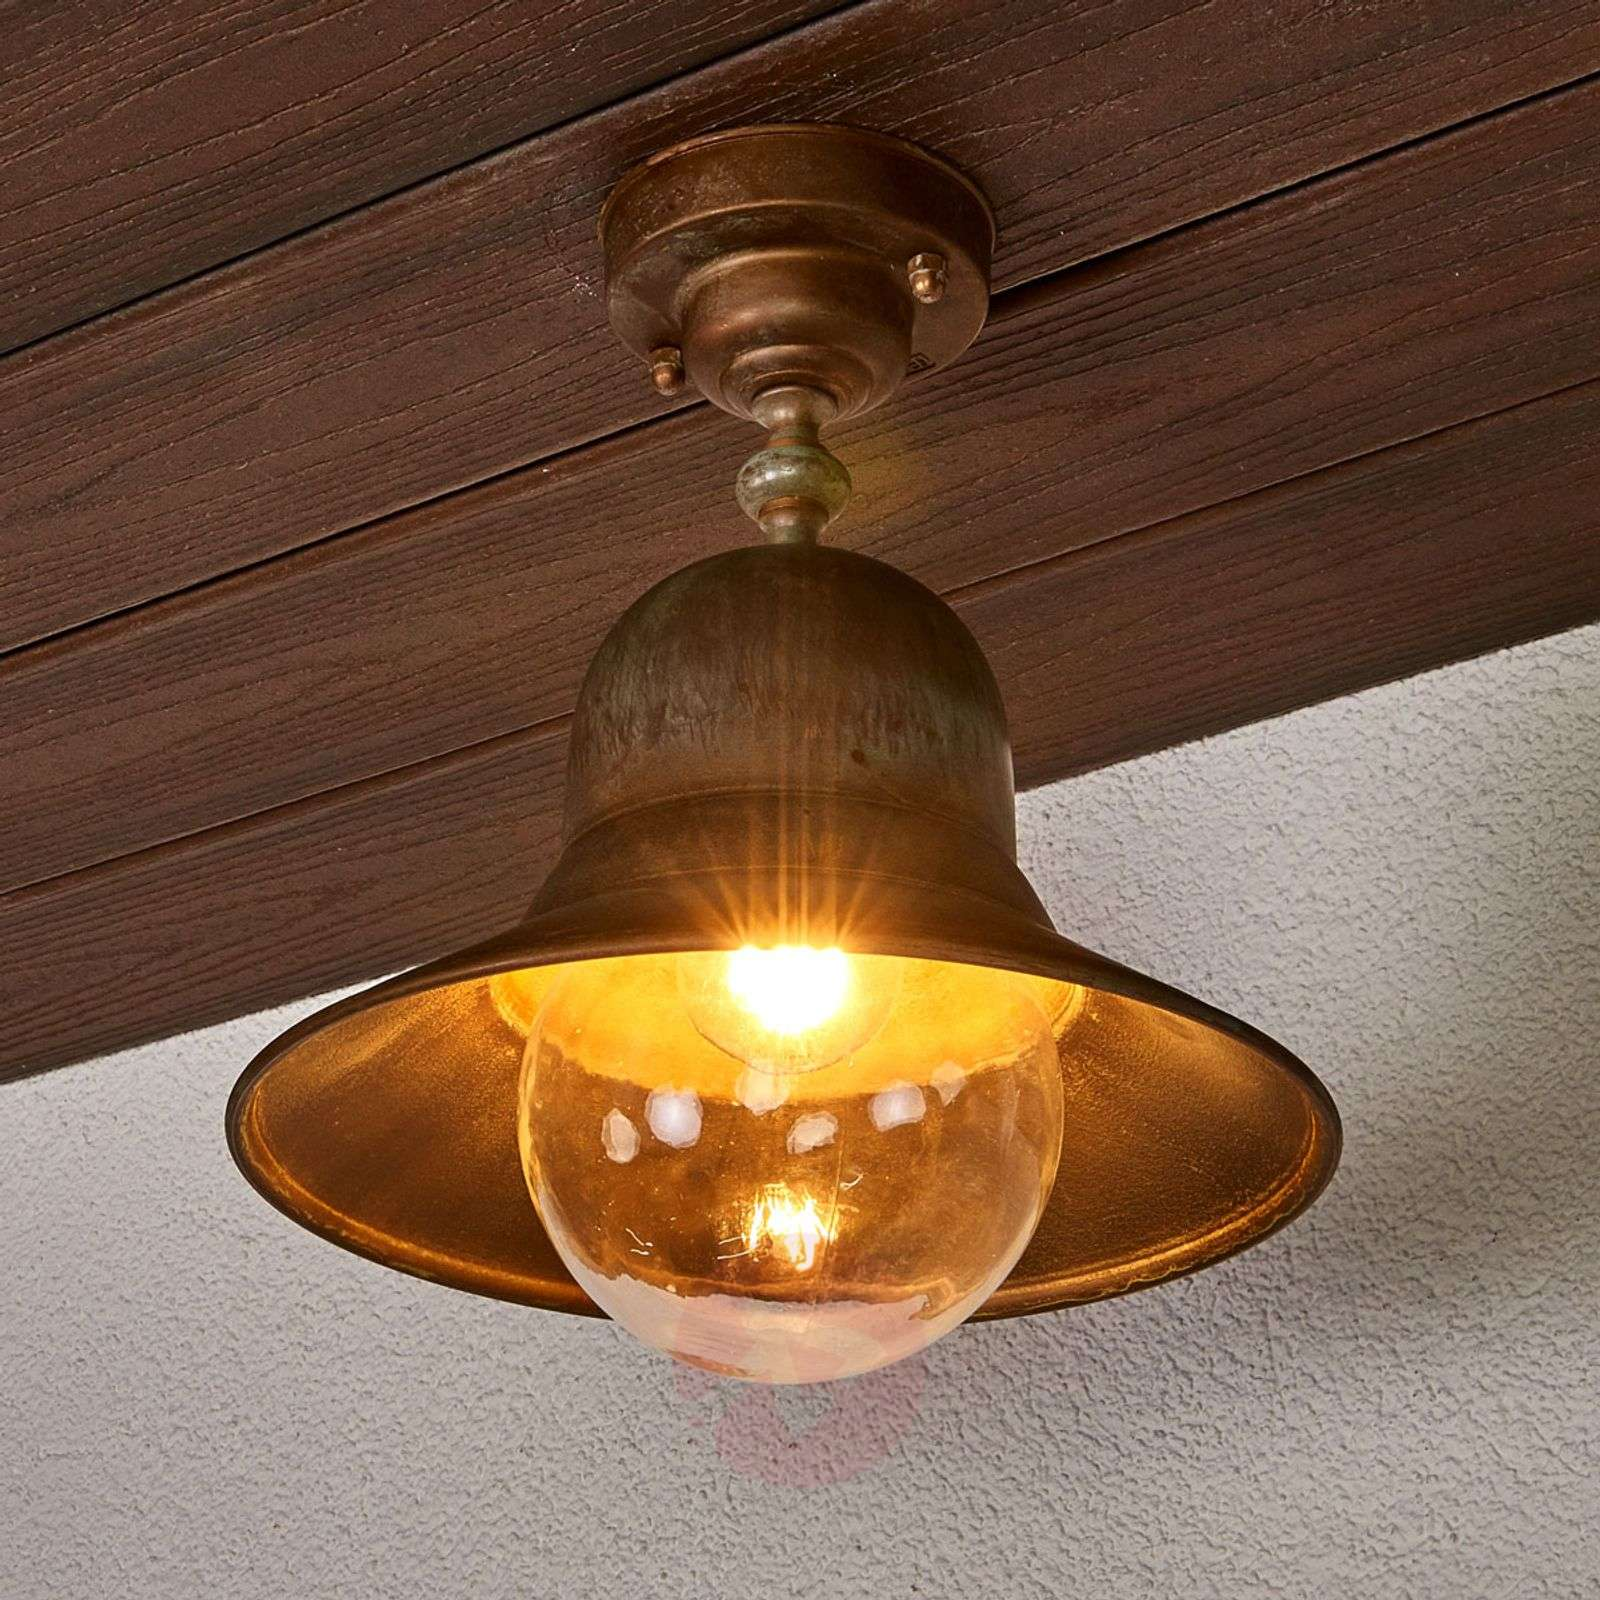 Brass ceiling light Marquesa for outdoors-6515263-01